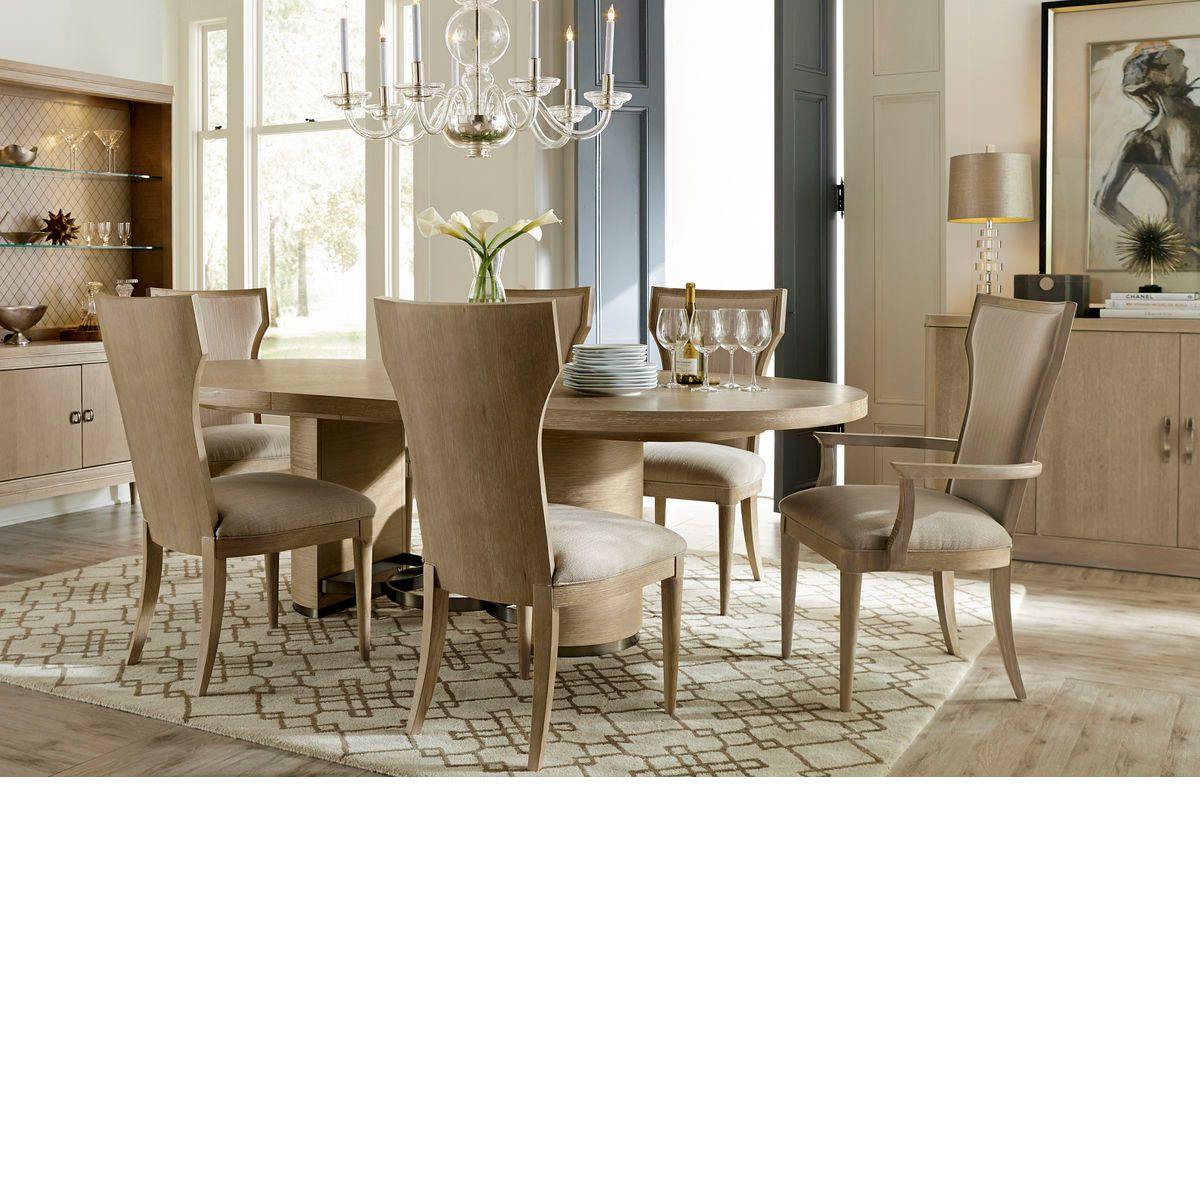 The Dump Furniture  Greenpoint Sandstone  Dining Room Furniture Best Dining Room Furniture Outlet Stores Design Ideas